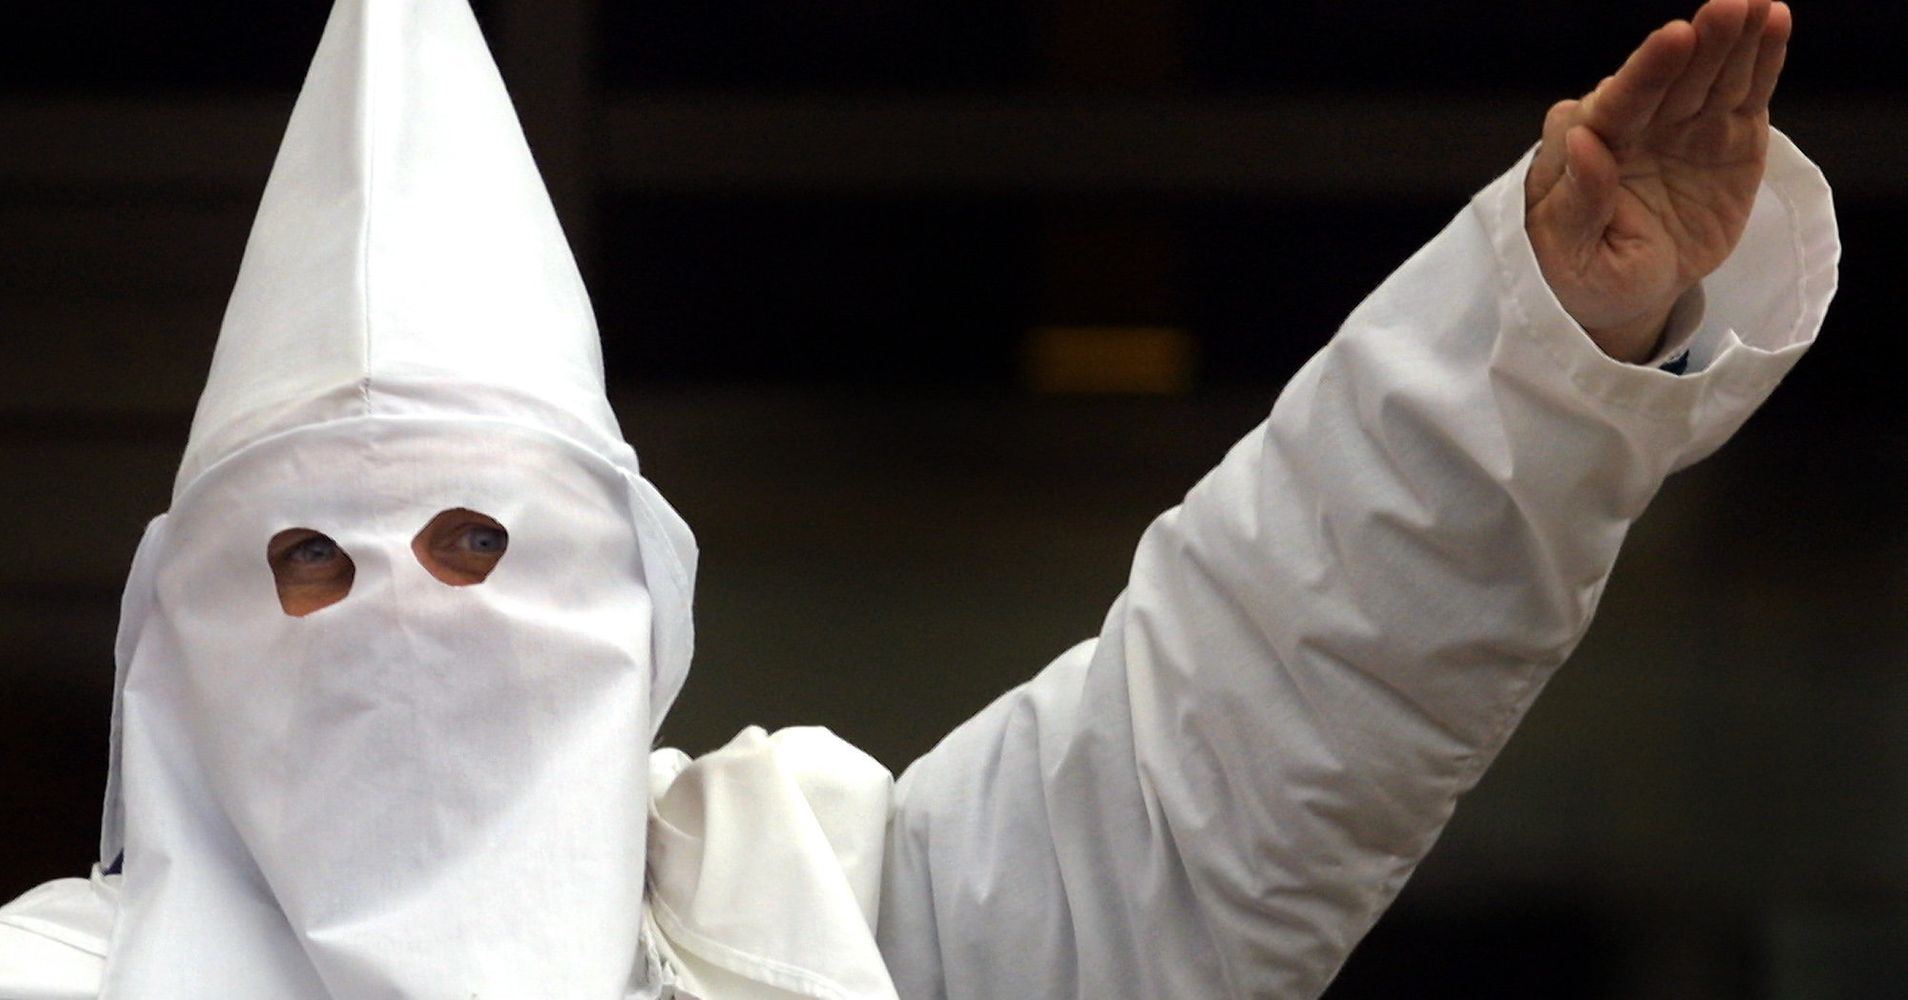 The KKK Is Working To Get Out The Vote -- For Donald Trump, Of Course